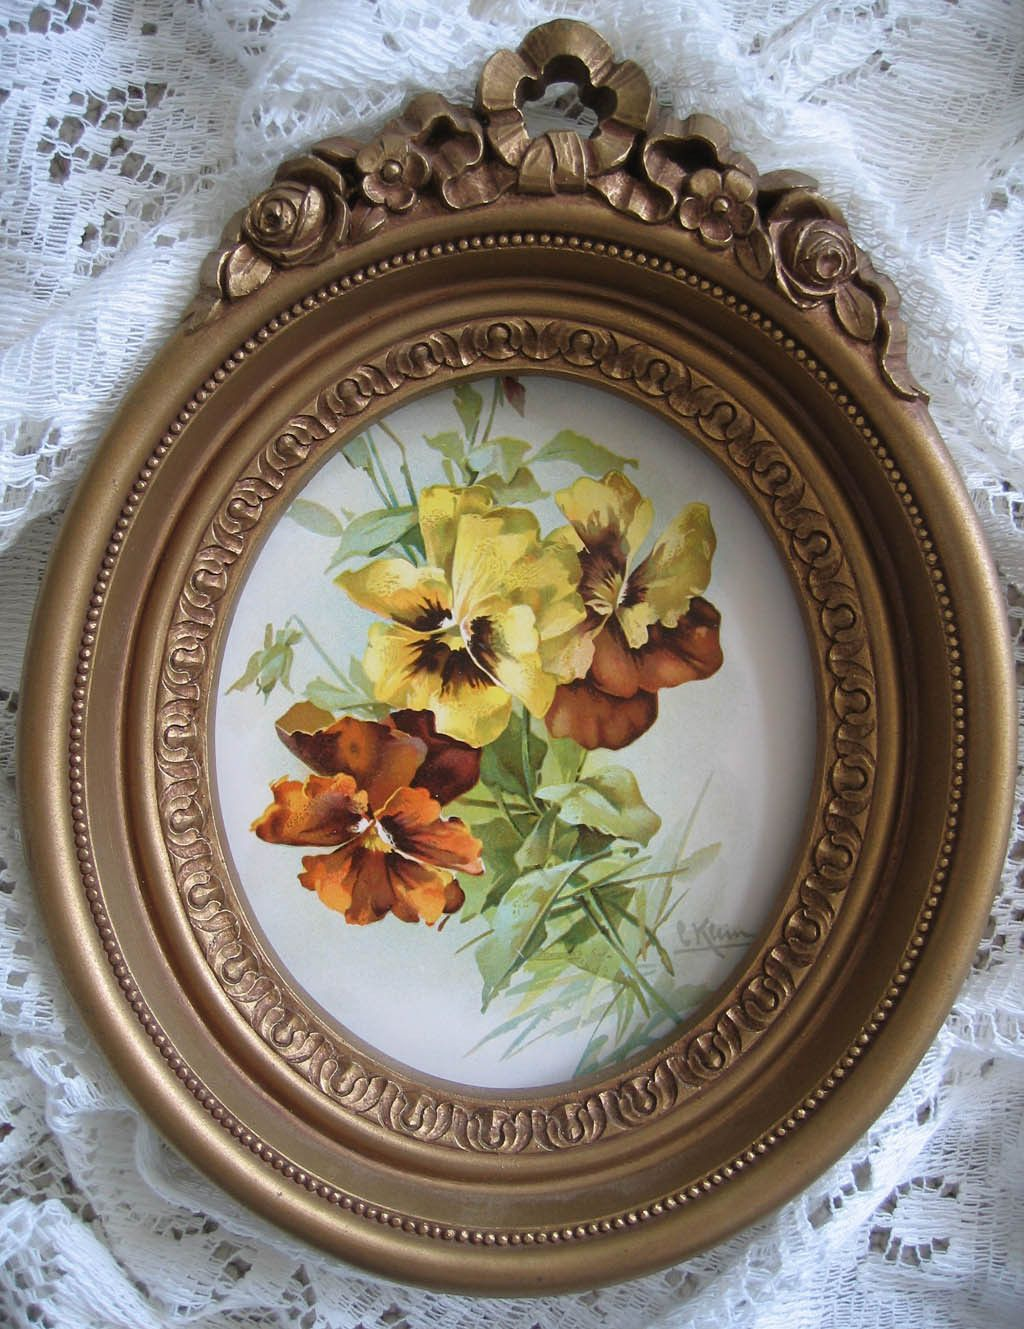 Antique Pansies Print In Oval Barbola Frame For Sale Now At Www